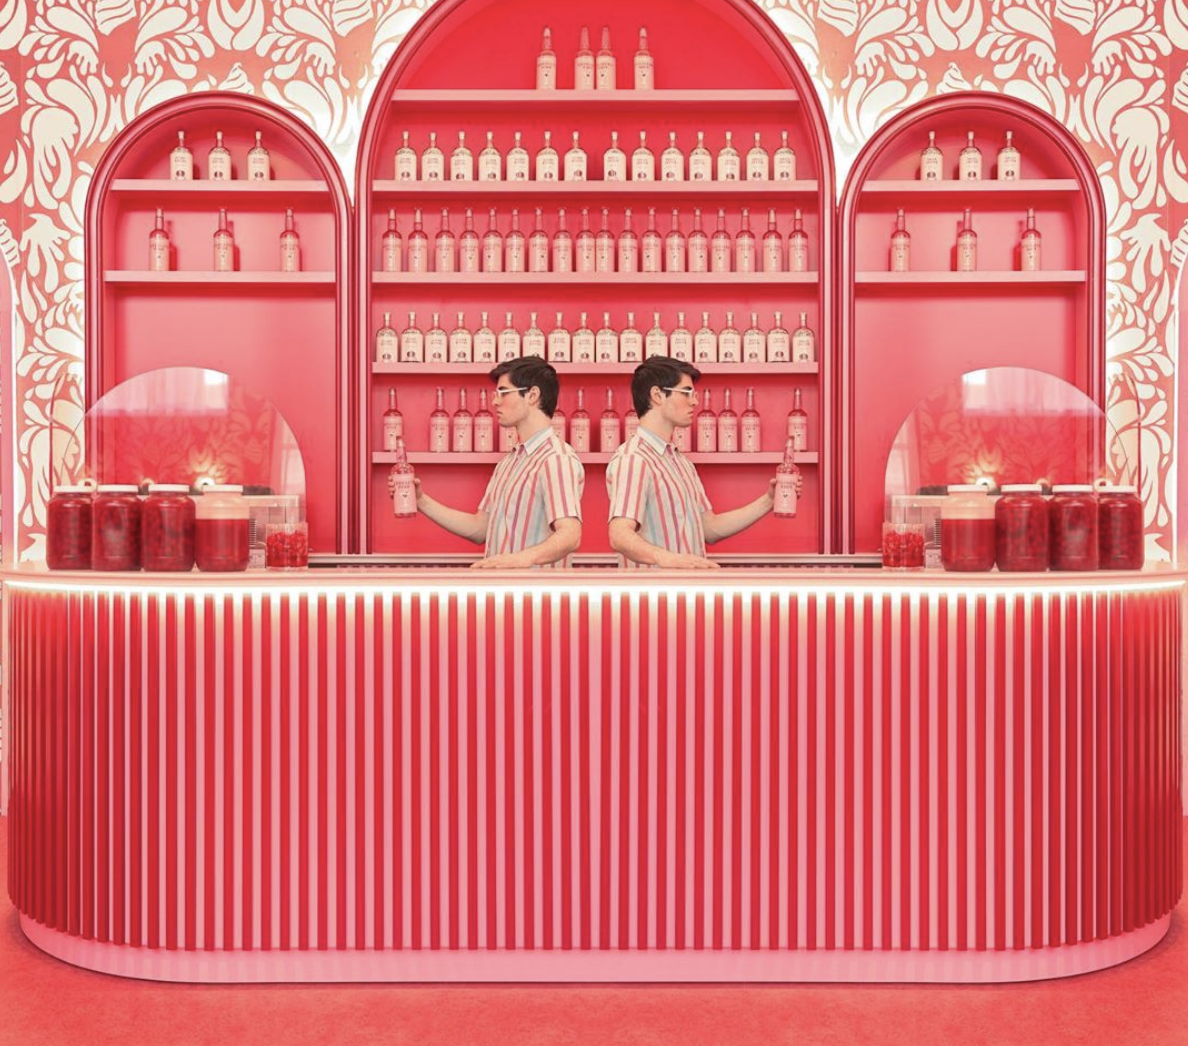 Absolute Pink Bar by Maria Zvarbova